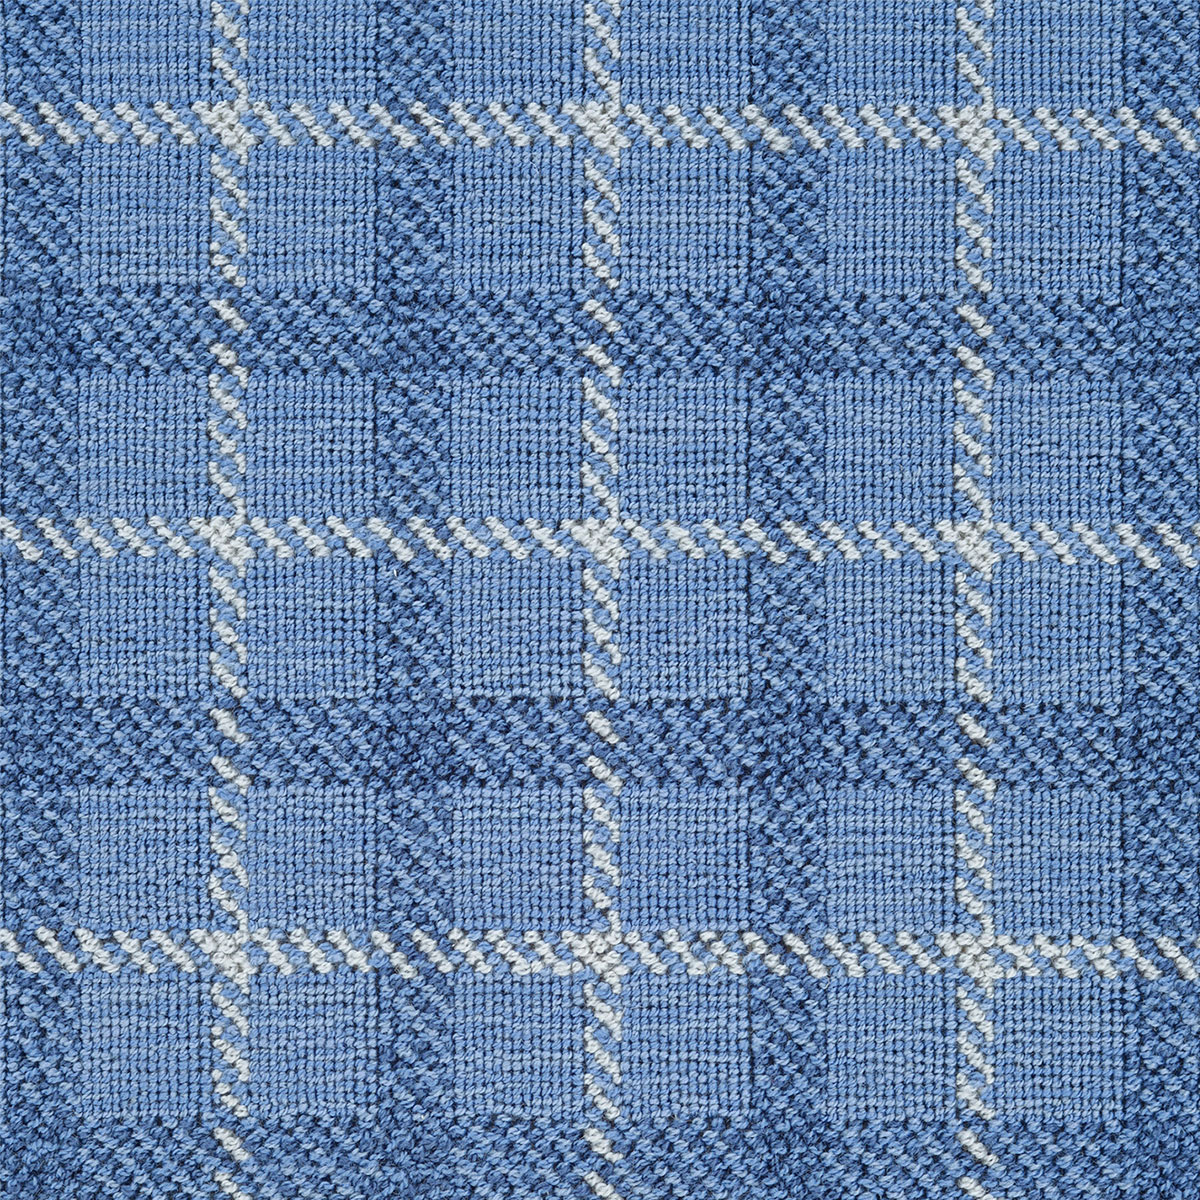 telly-square_wool_broadloom_patterson-flynn-martin_pfm